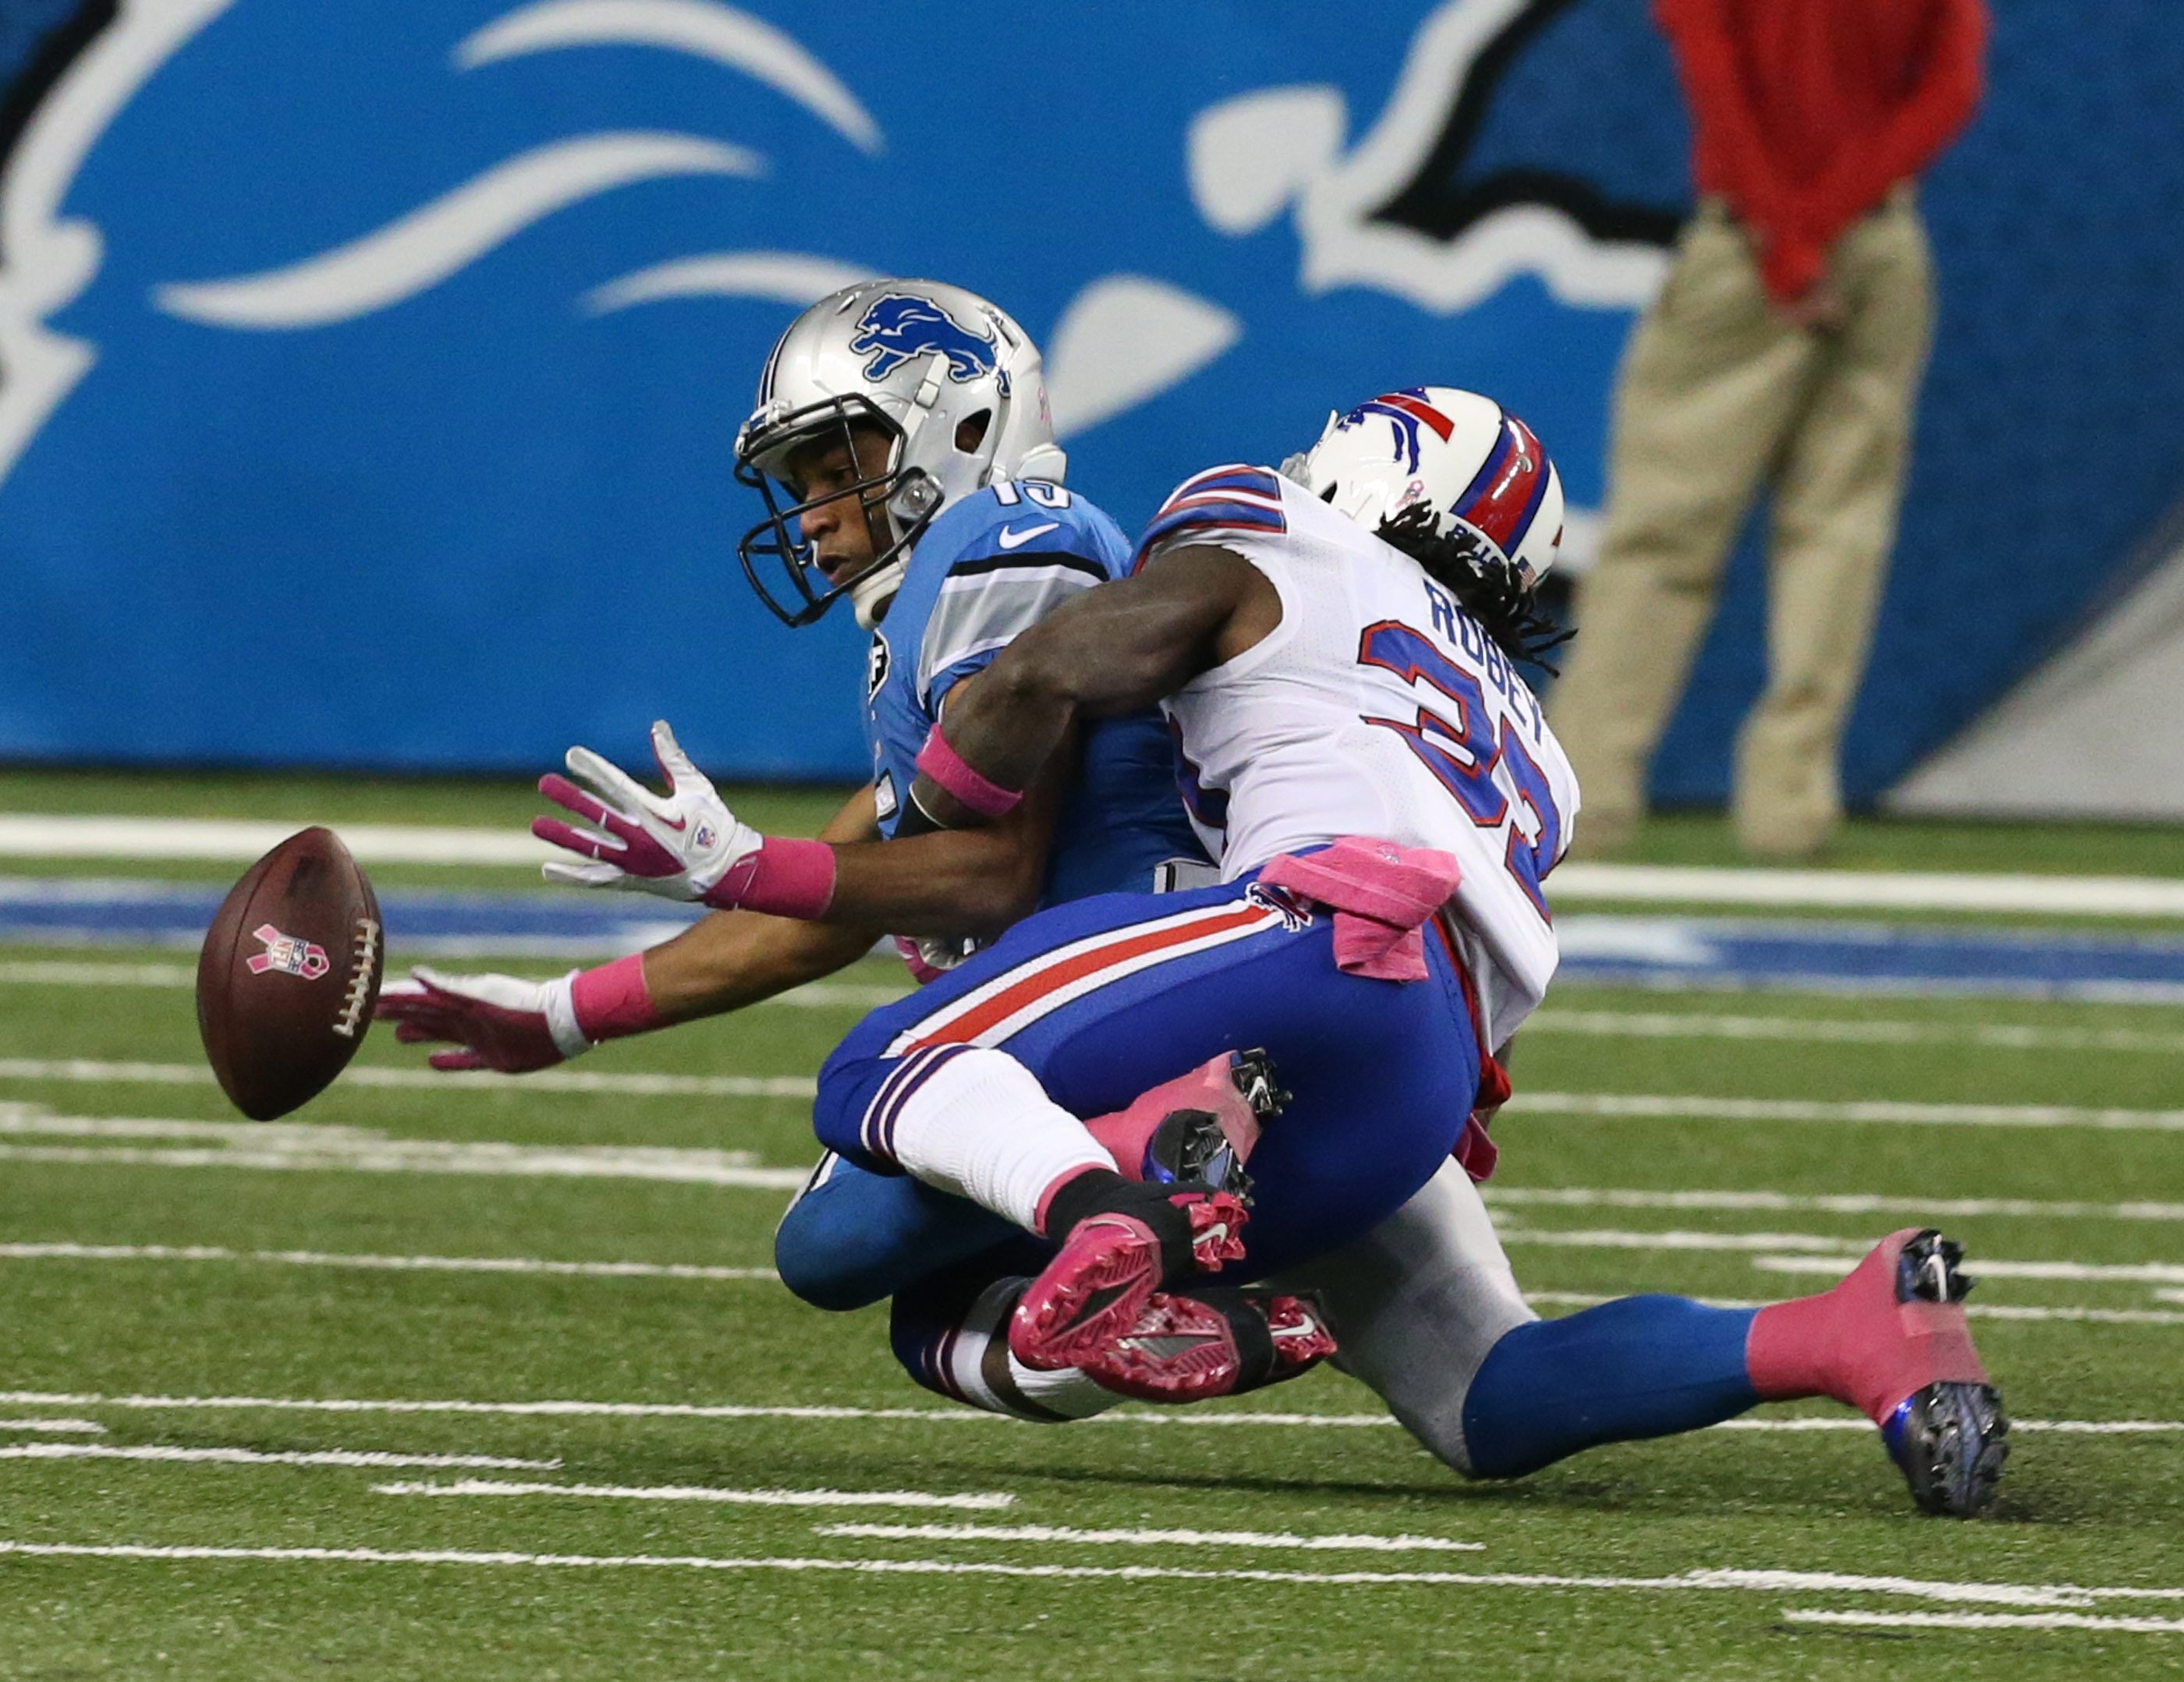 Bills defensive back Nickell Robey has been inspired by memories of his late mother to play with fearlessness in the NFL.